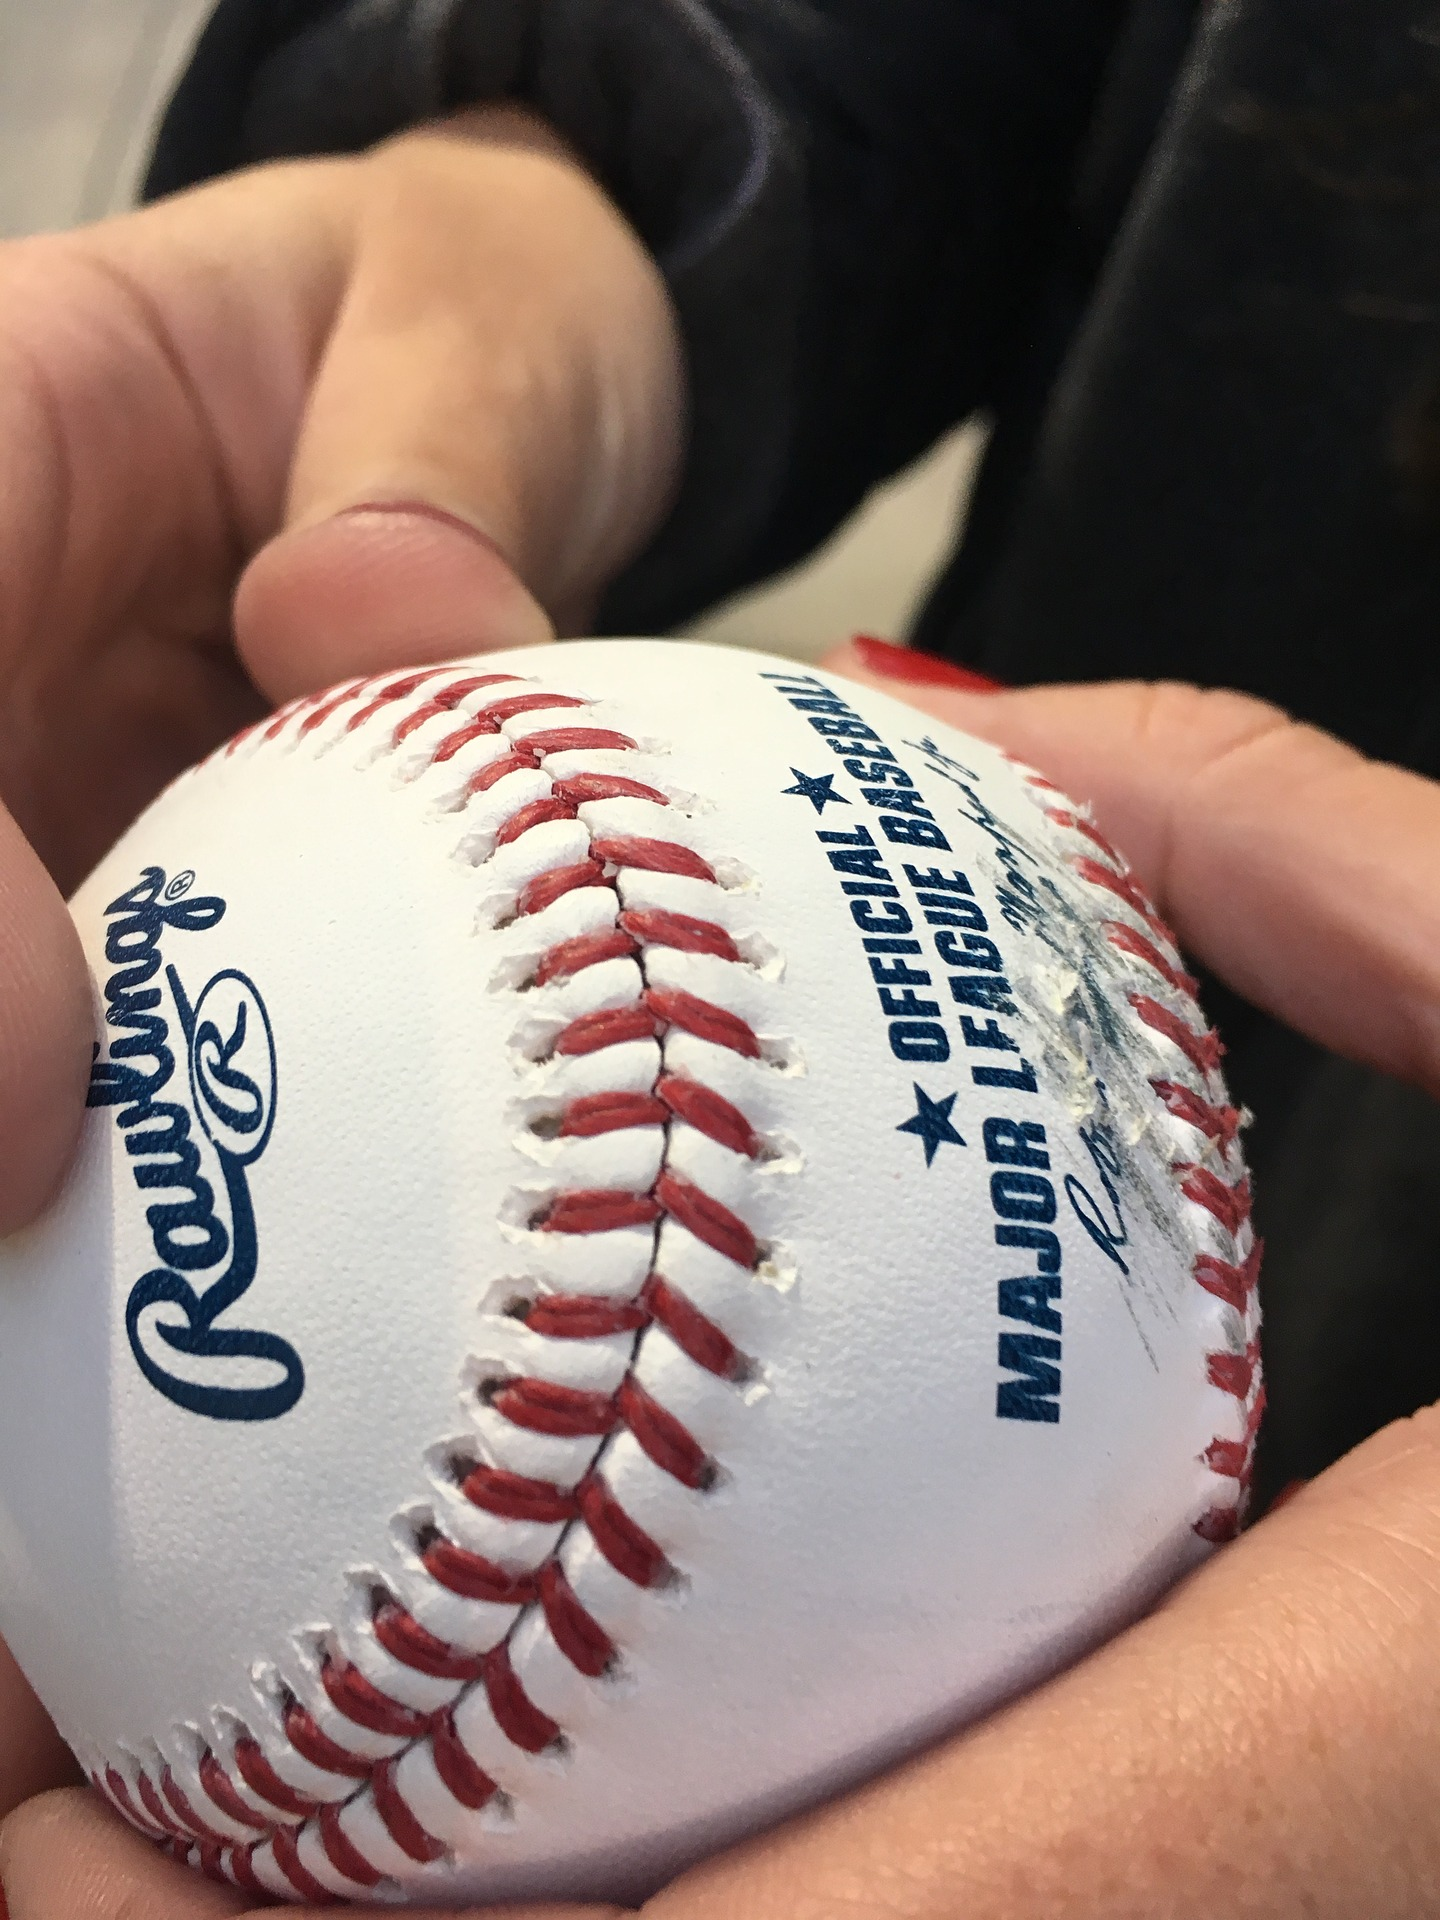 Blue Cross Blue Shield of Michigan and Detroit Tigers Celebrate Children's Health with Annual Kids Opening Day (April 9), Invites 200 Kids for Special Experience